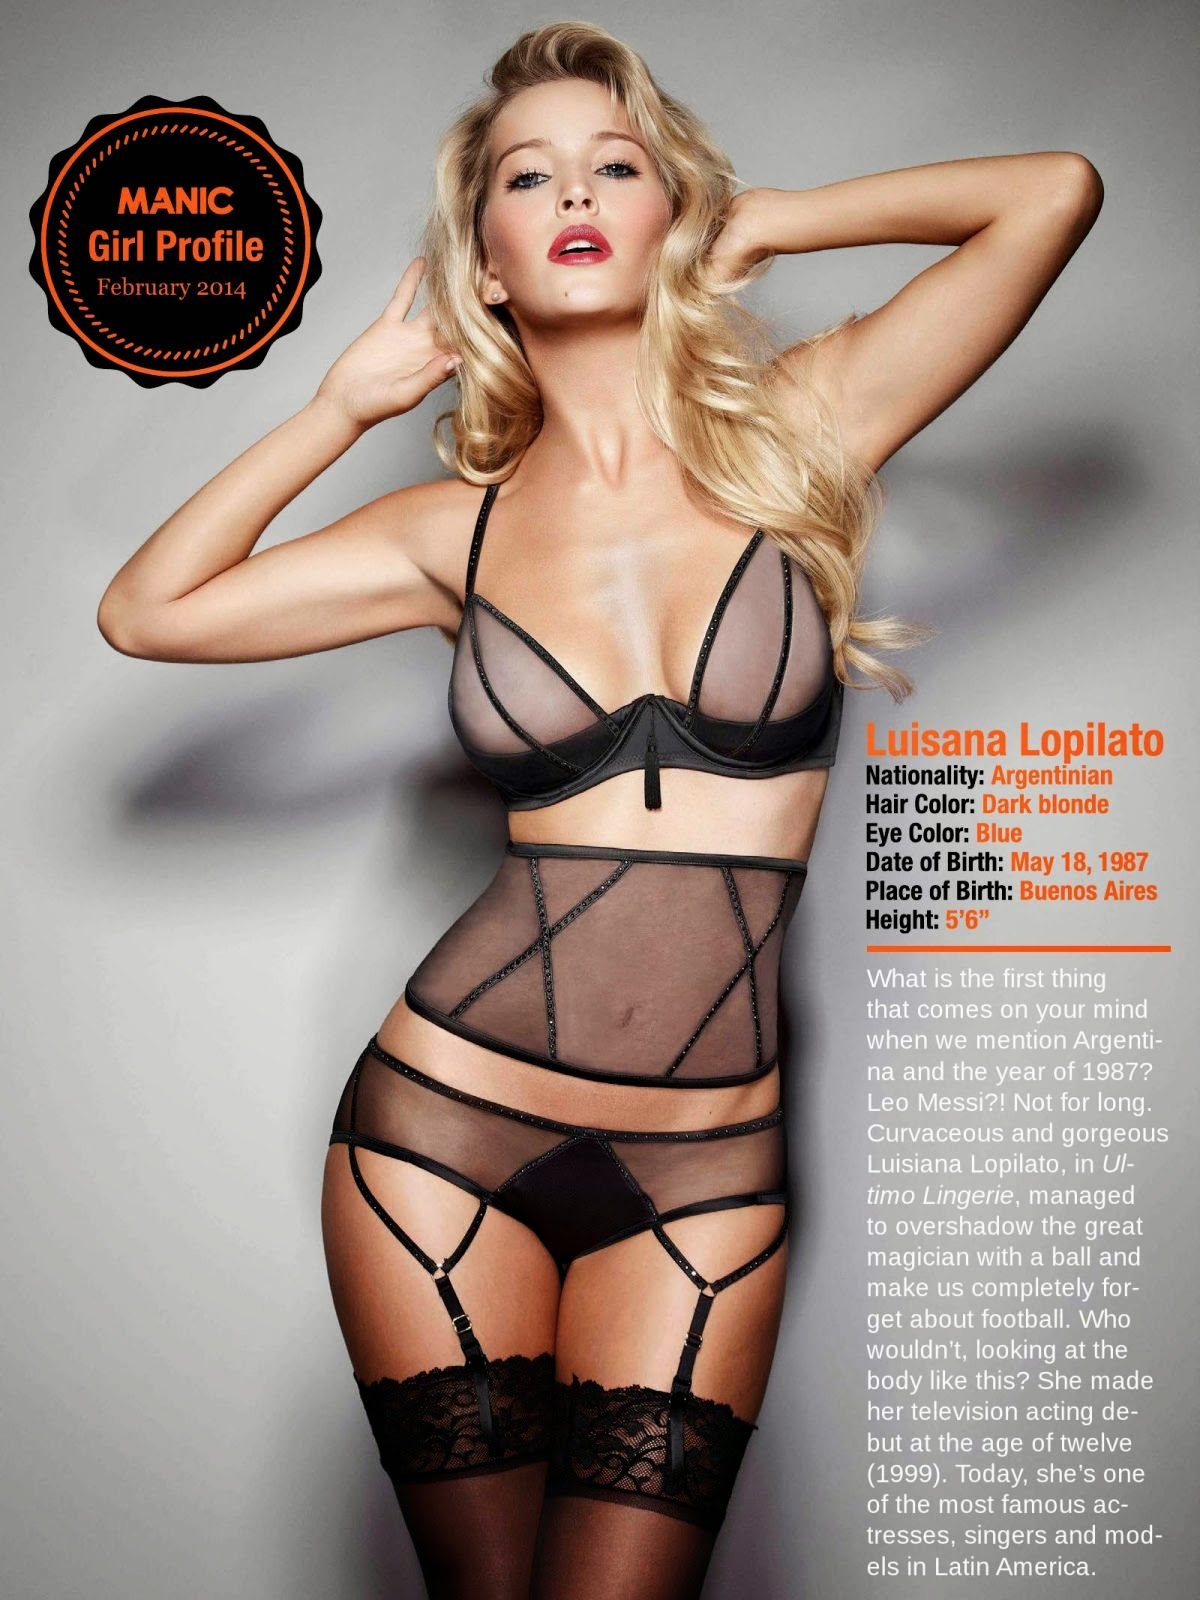 Luisana Lopilato HQ Pictures Manic Magazine Photoshoot February 2014